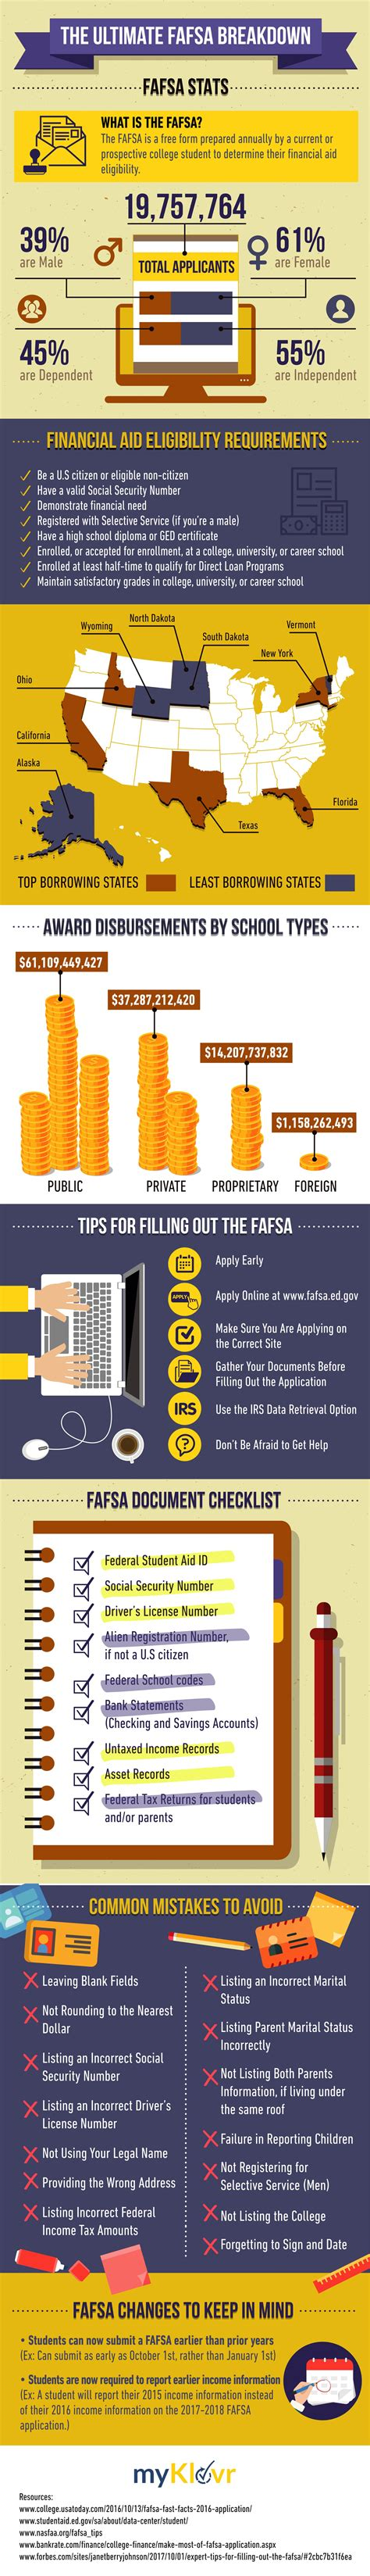 Infographic The Ultimate Fafsa Breakdown Myklovr